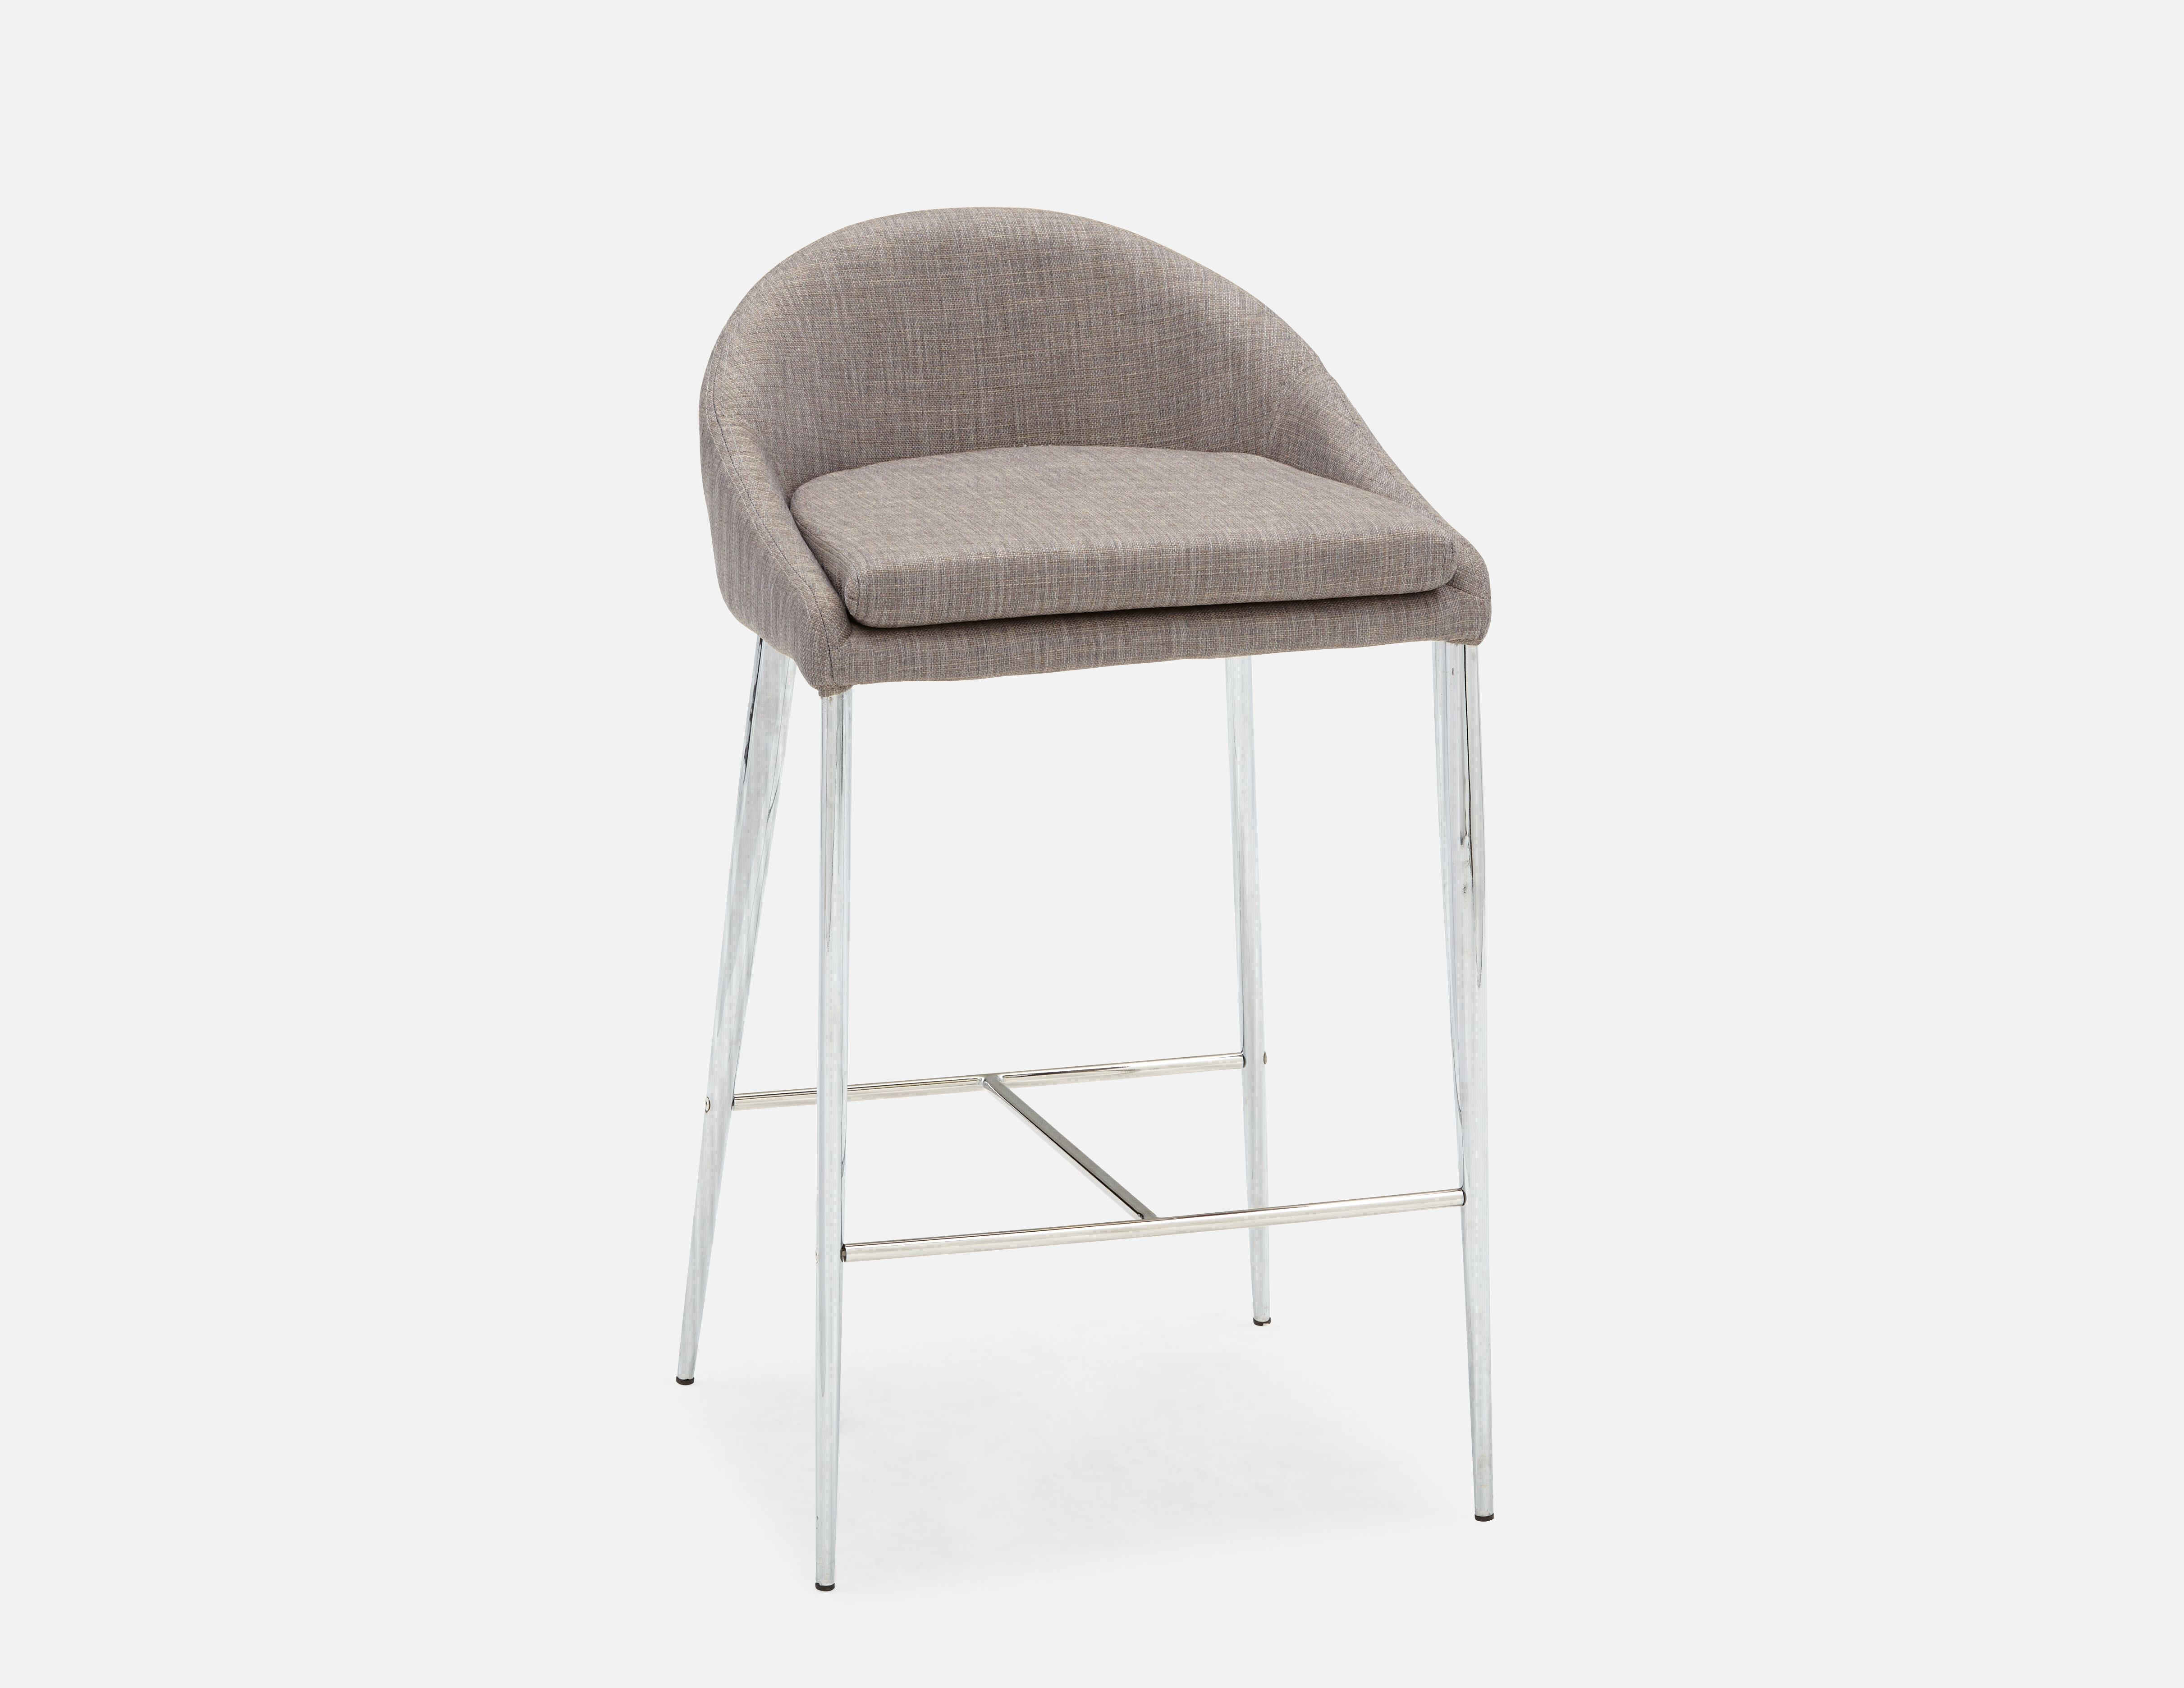 Structube Stools Abby Grey Upholstered Counter Stool 66cm 26